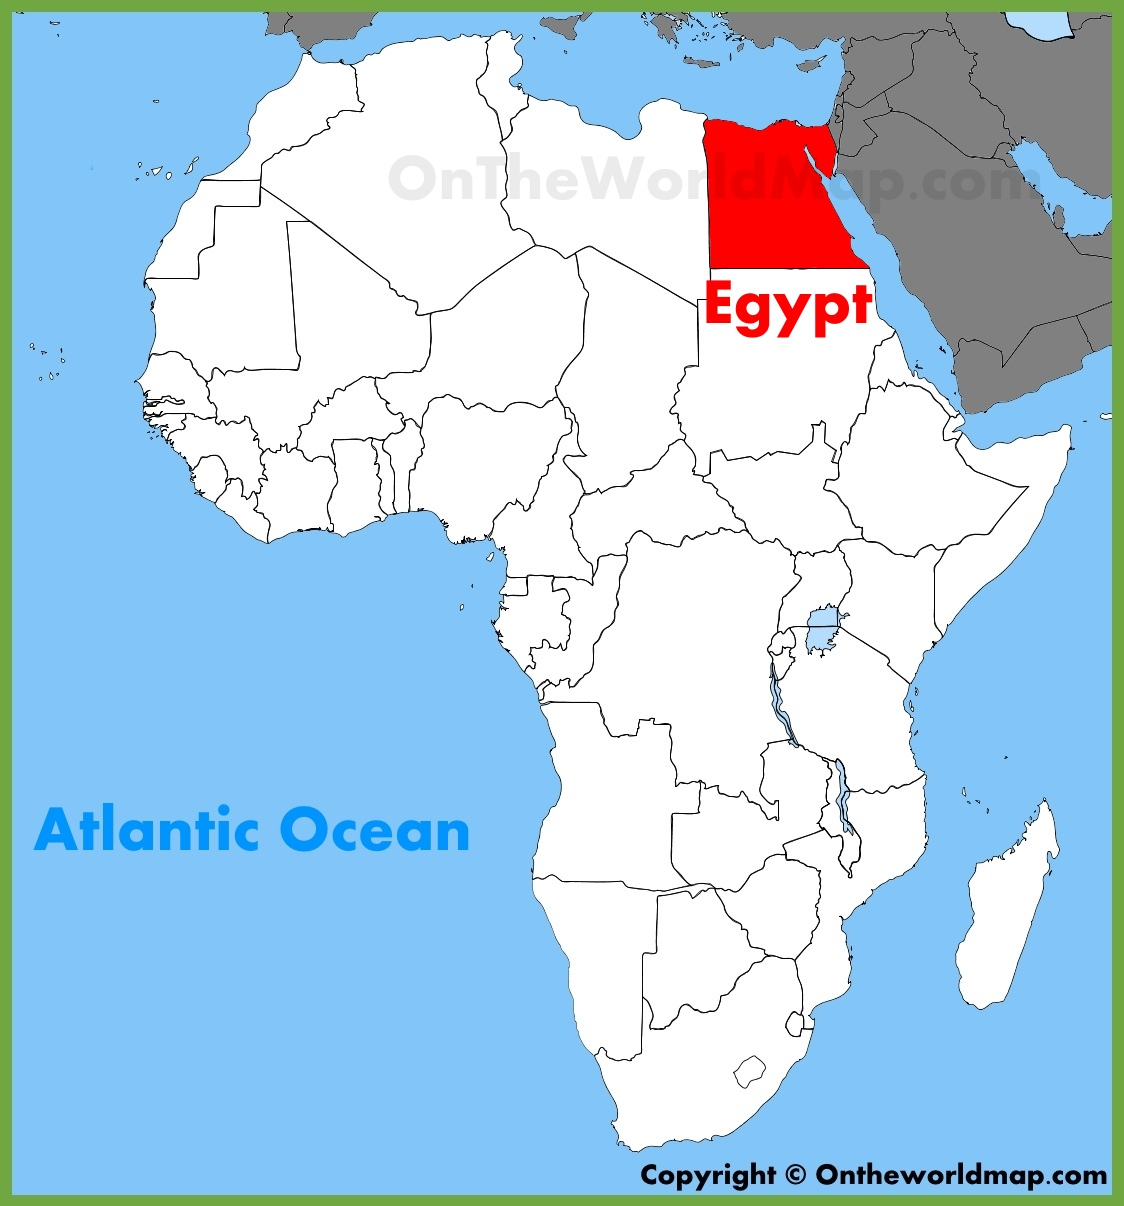 Map Of Egypt And Africa Egypt location on the Africa map